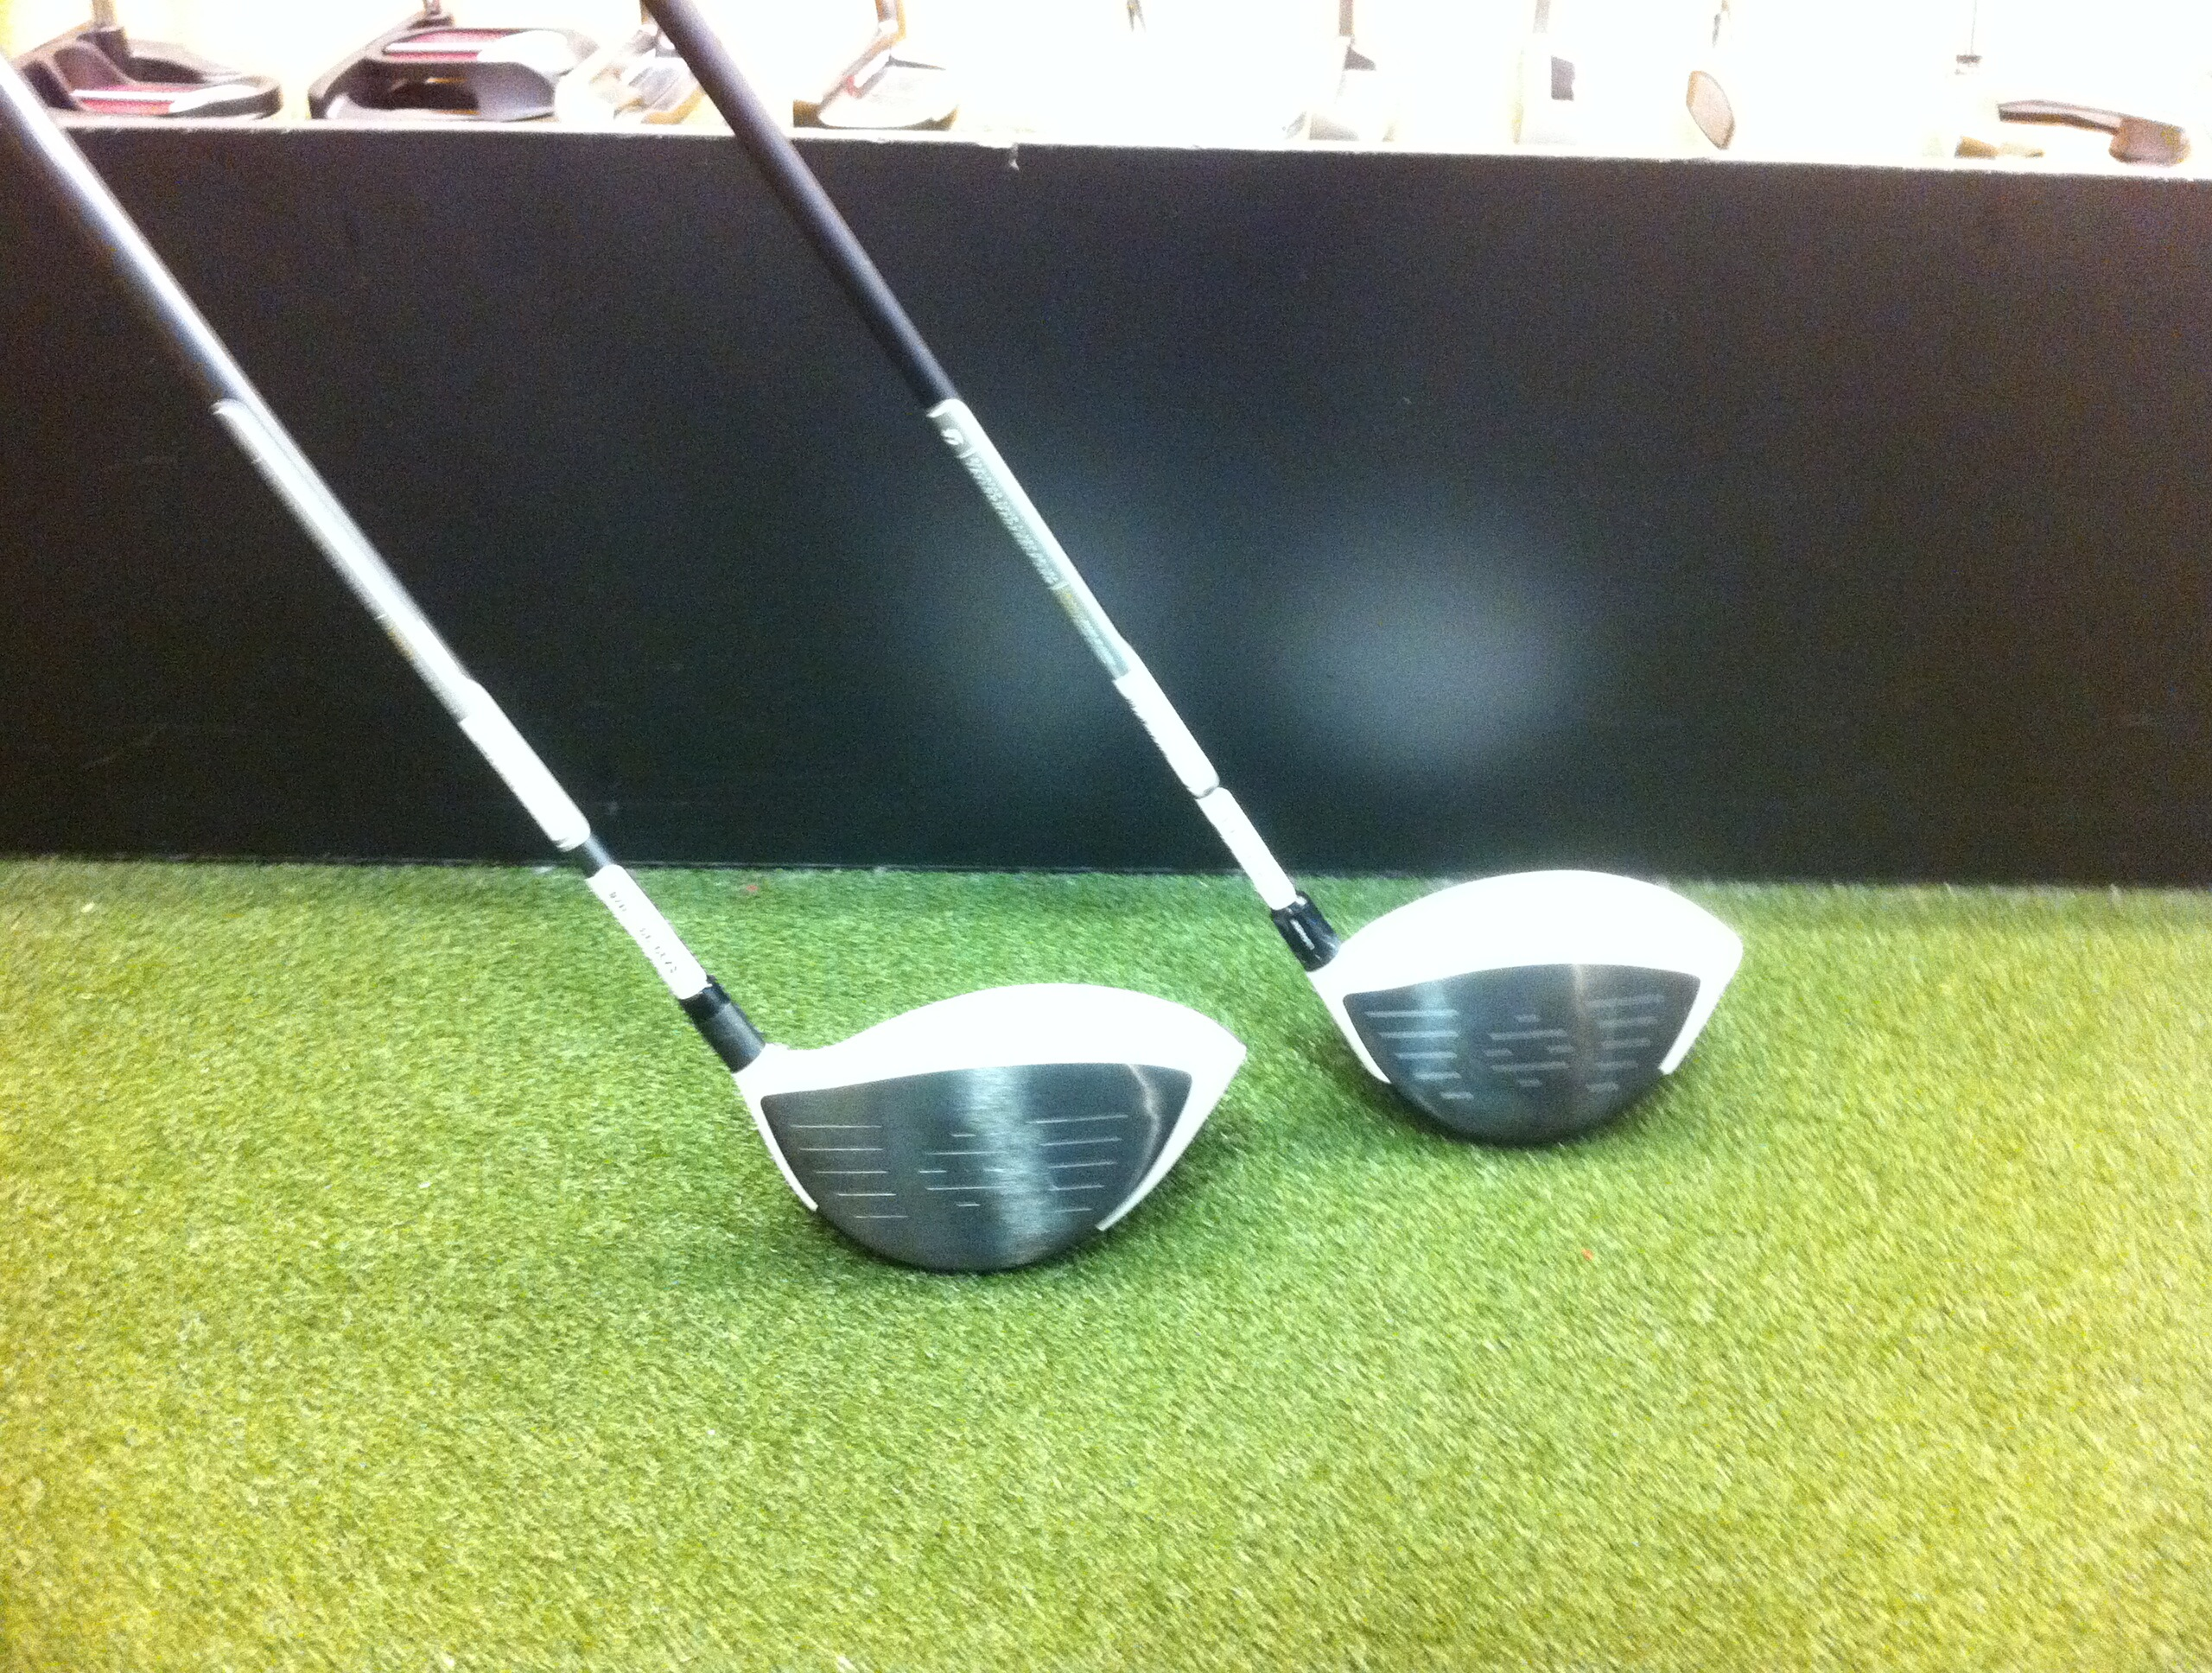 Difference Between Taylormade R11 And R11s Driver Free Download